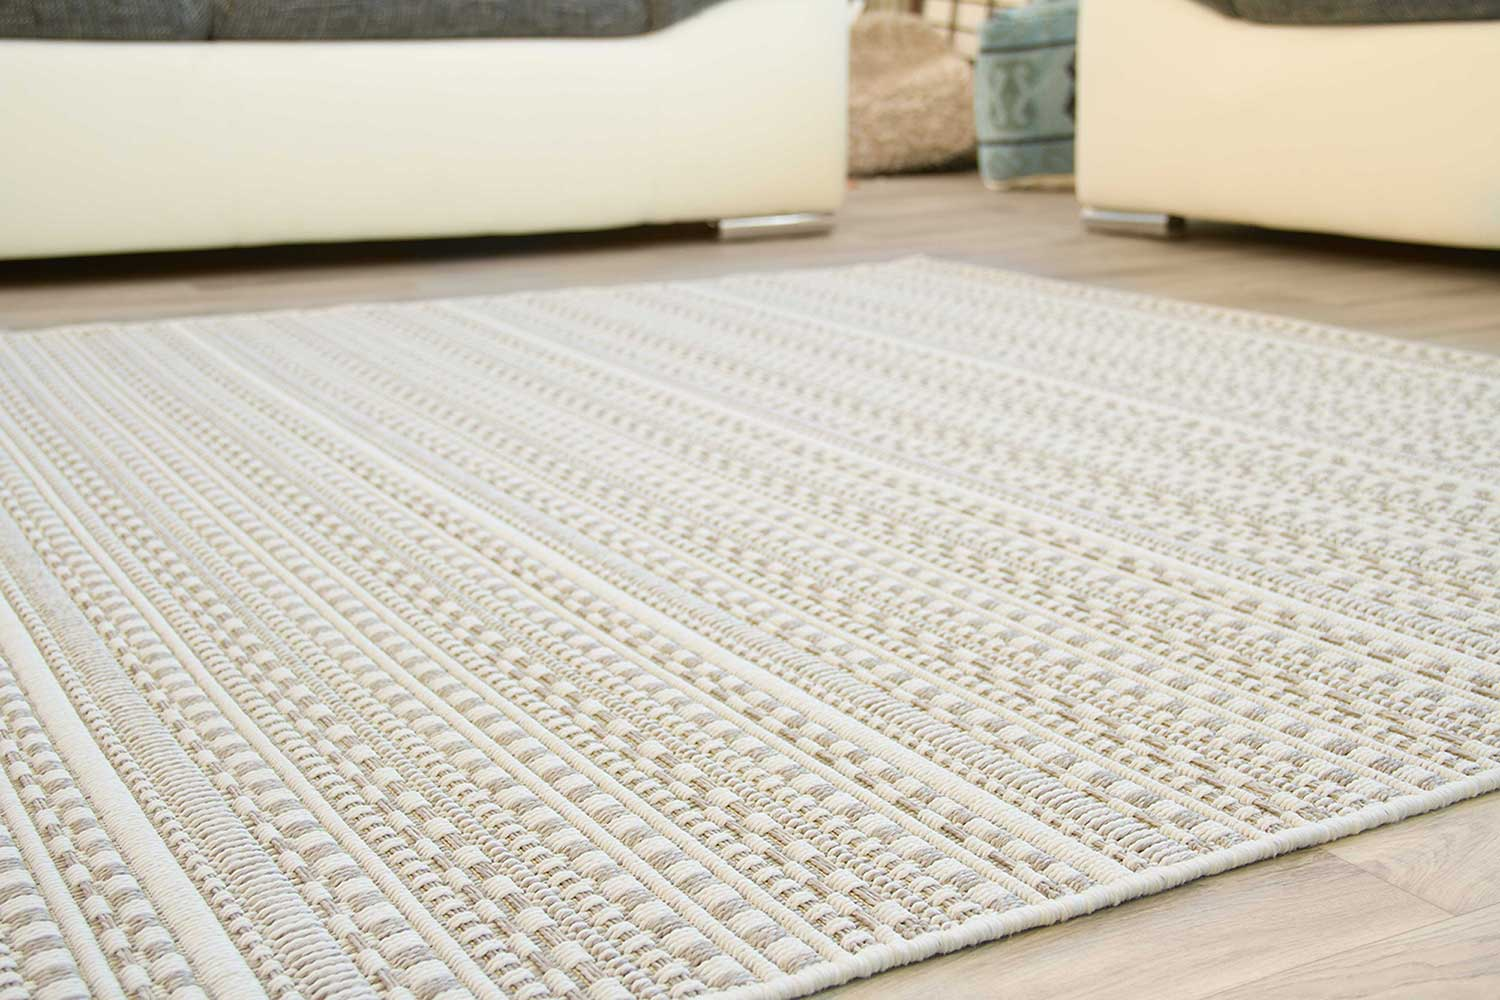 Berber Teppich Material In- Und Outdoor Teppich Lappland Design - Muster | Global